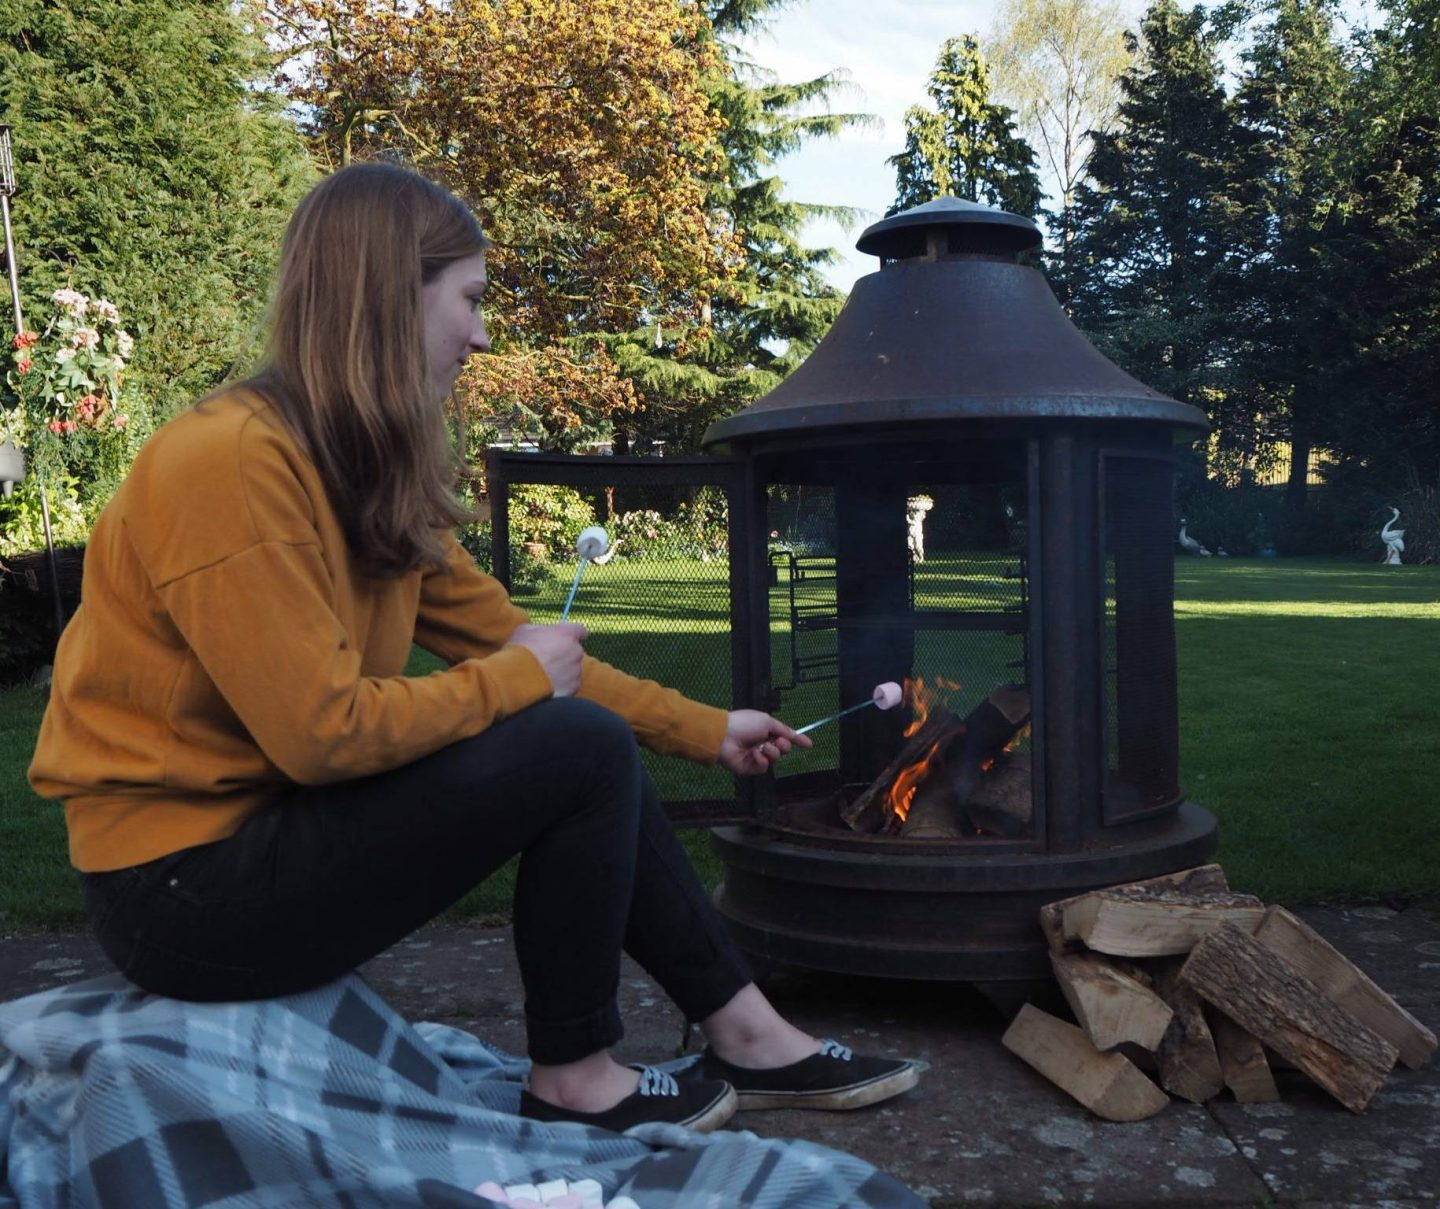 girl toasting marshmallows on open firepit